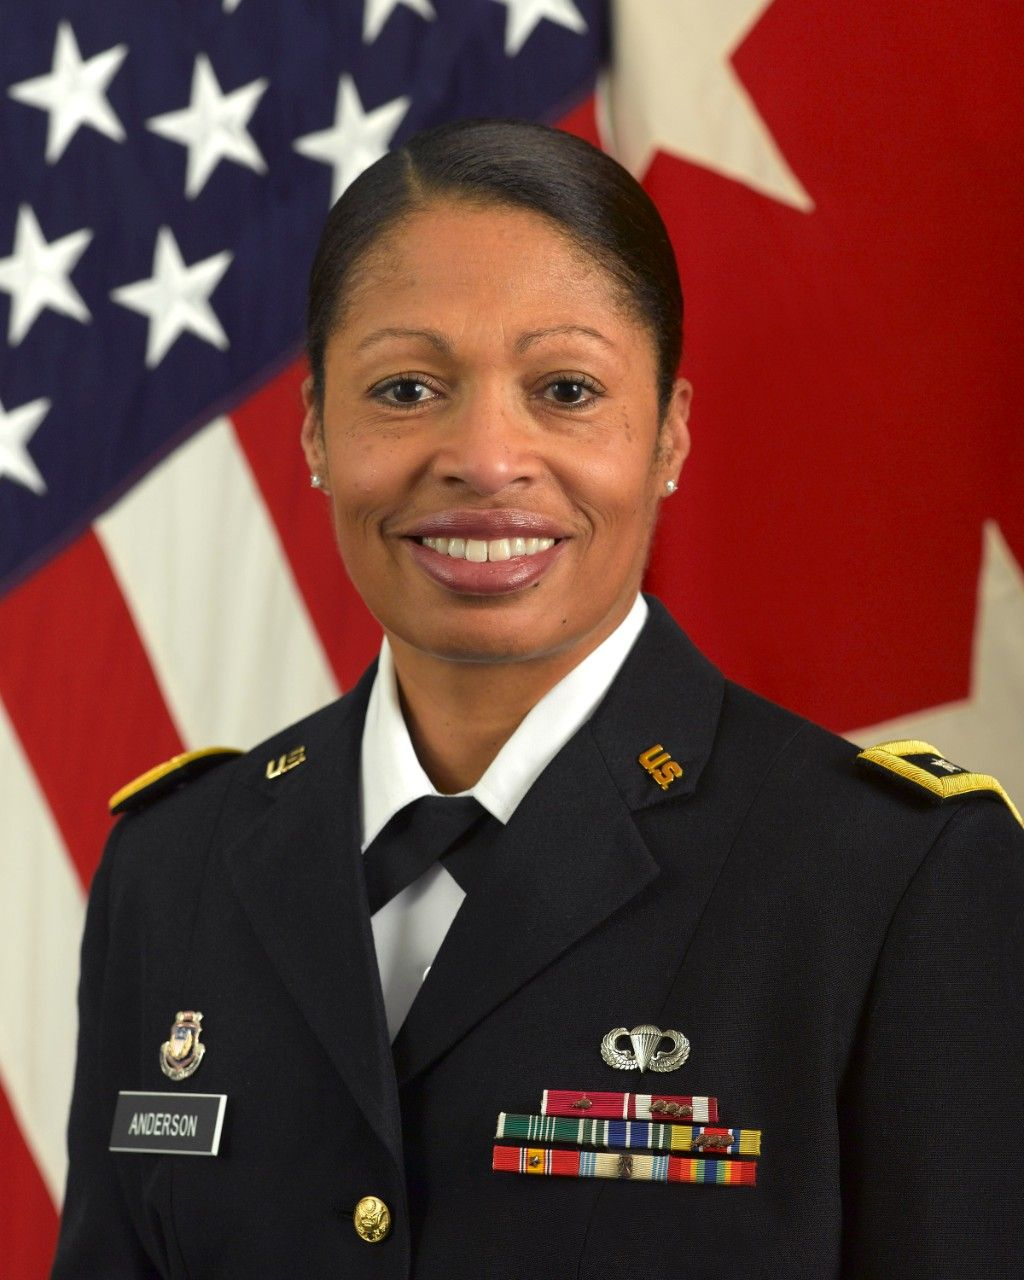 File brigadier general richard j tubb jpg wikipedia the free - The Color Of Change The Army S 1st Black Female 2 Star General On